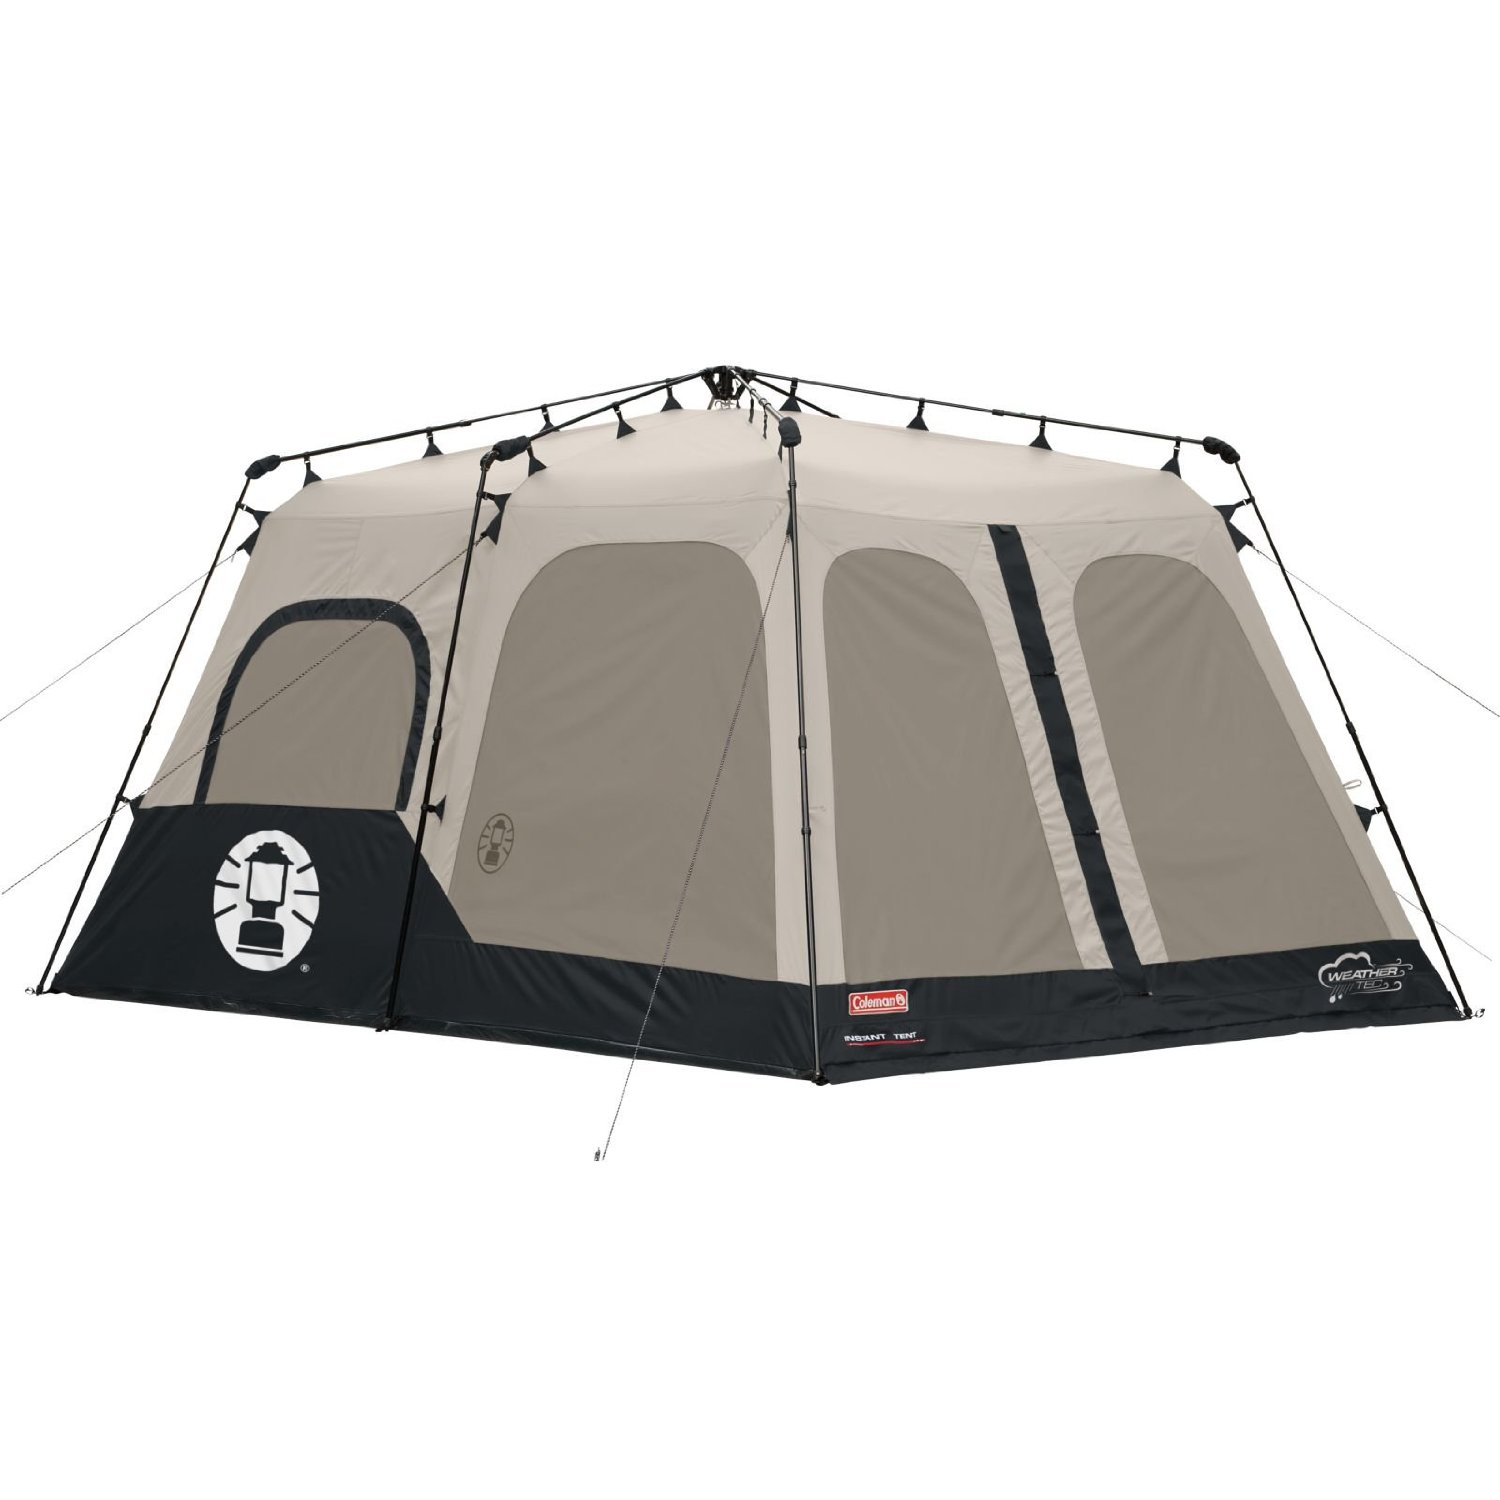 Coleman 8 Person Instant Tent  sc 1 st  Koiyaki Guiding School & Best Family Tent For Camping in 2018 - KOIYAKI.COM